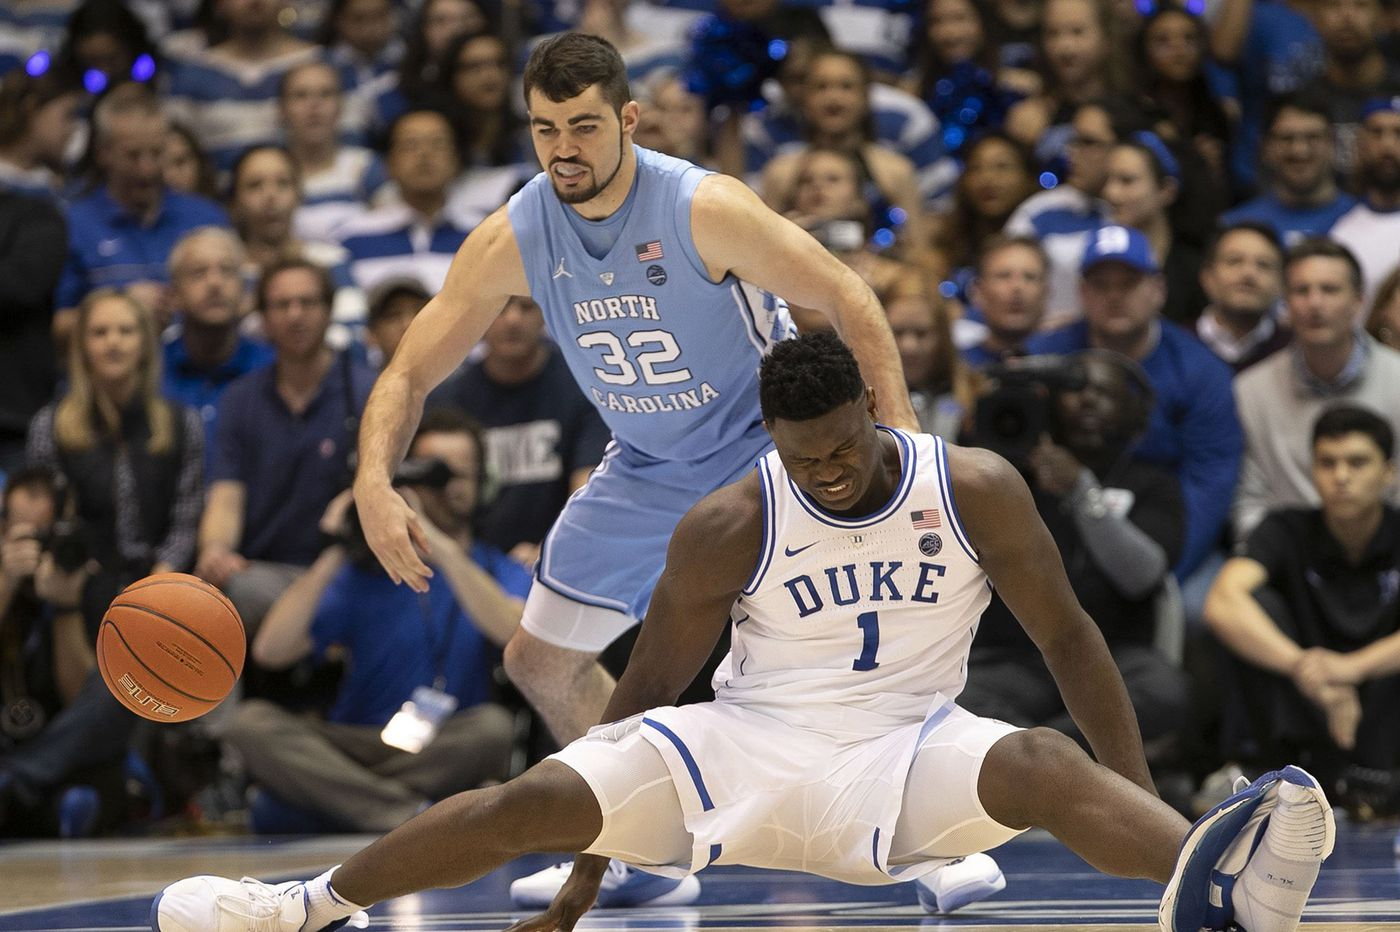 Lots of chatter and opinions after Zion Williamson's sneaker blowout | College basketball notes